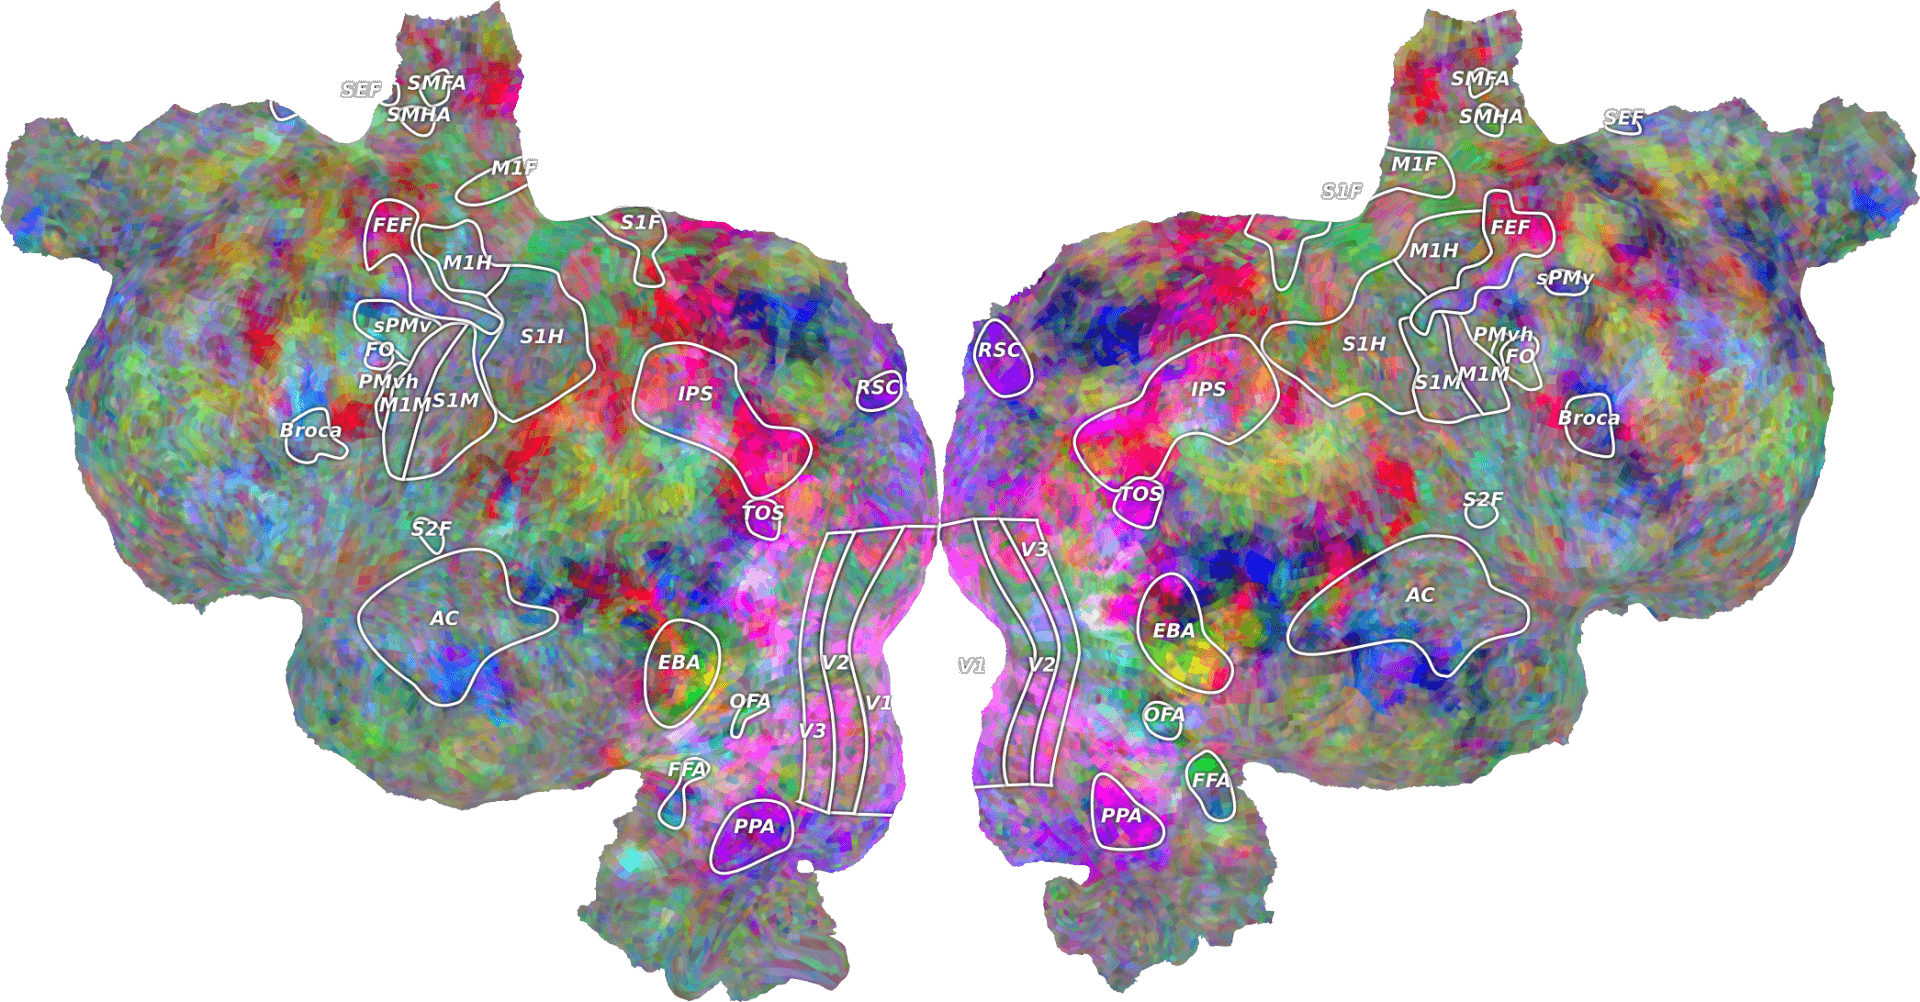 A flattened representation of the human brain imaged at the BIC. Colors correspond to the brain's activation in response to certain words or images. Image courtesy of Alex Huth, Gallant Lab.